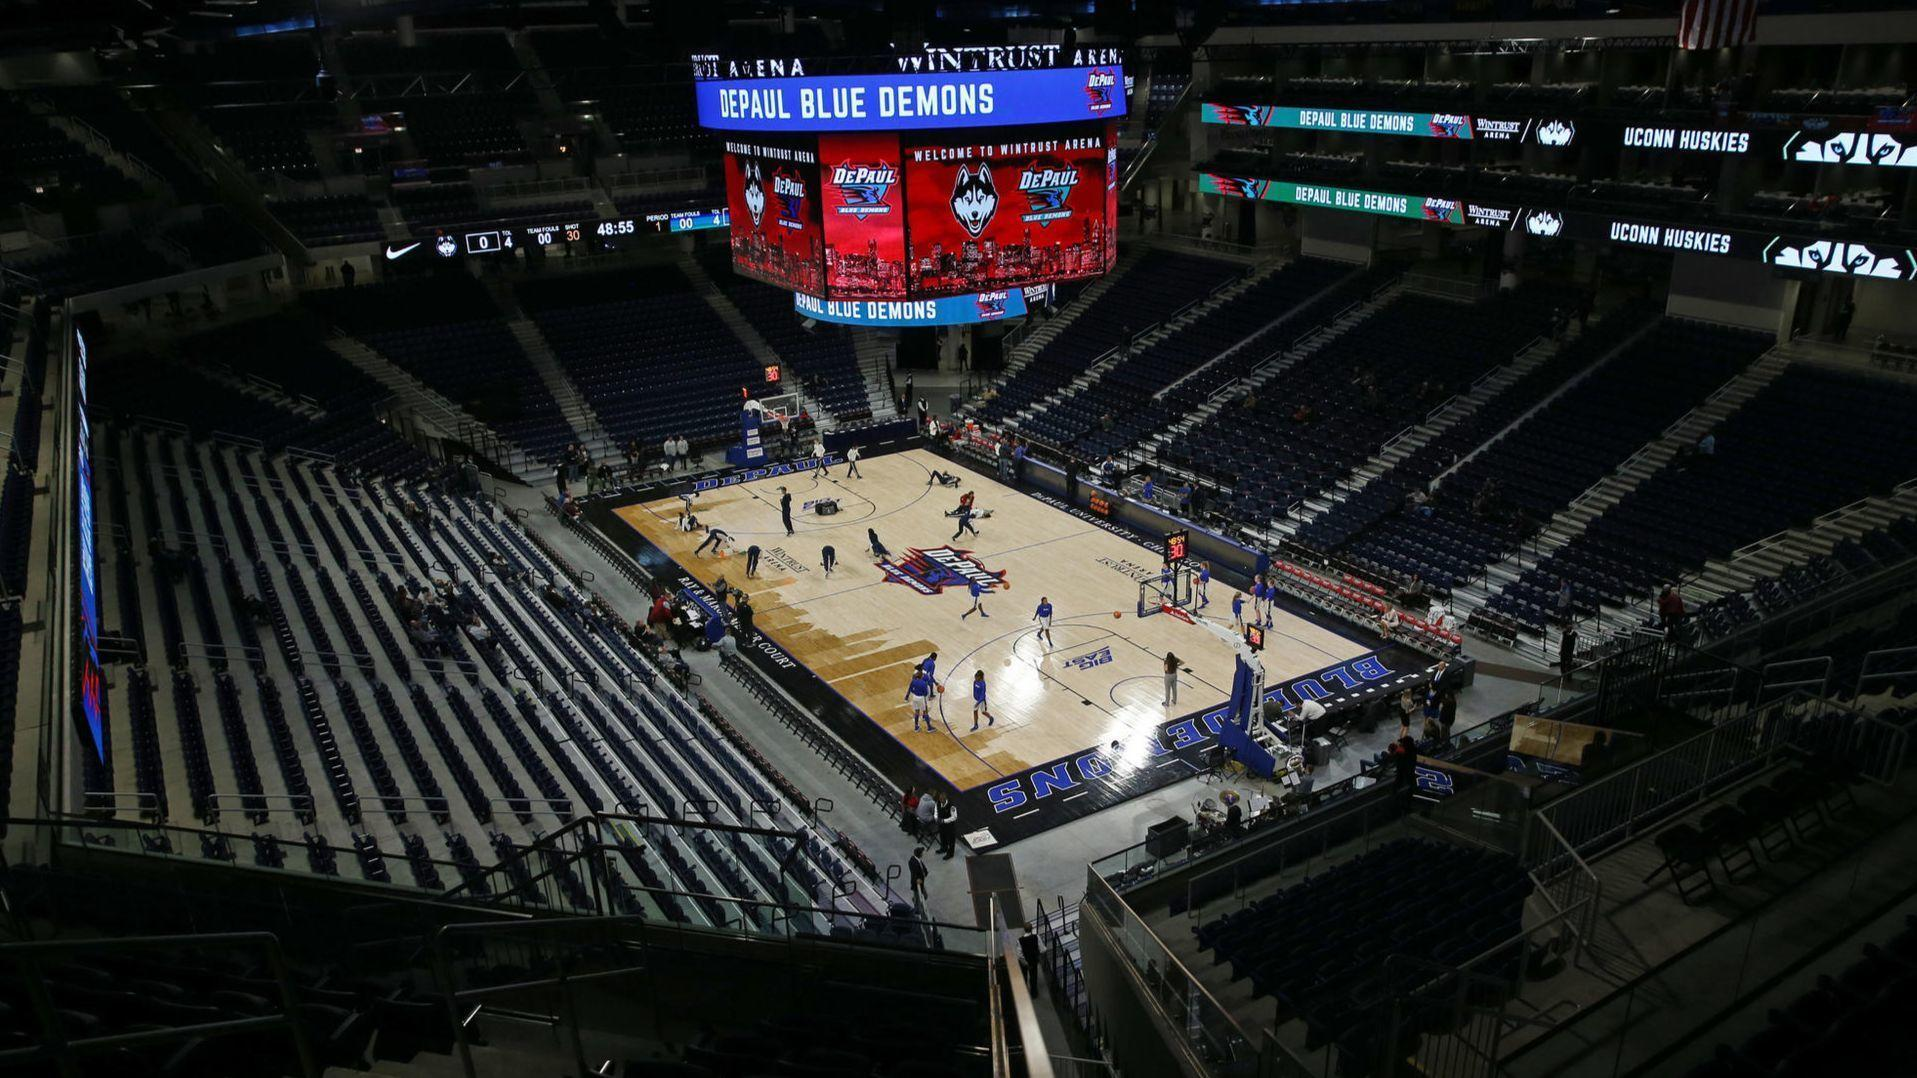 Exterior: What To Know If You're Going To Wintrust Arena For The